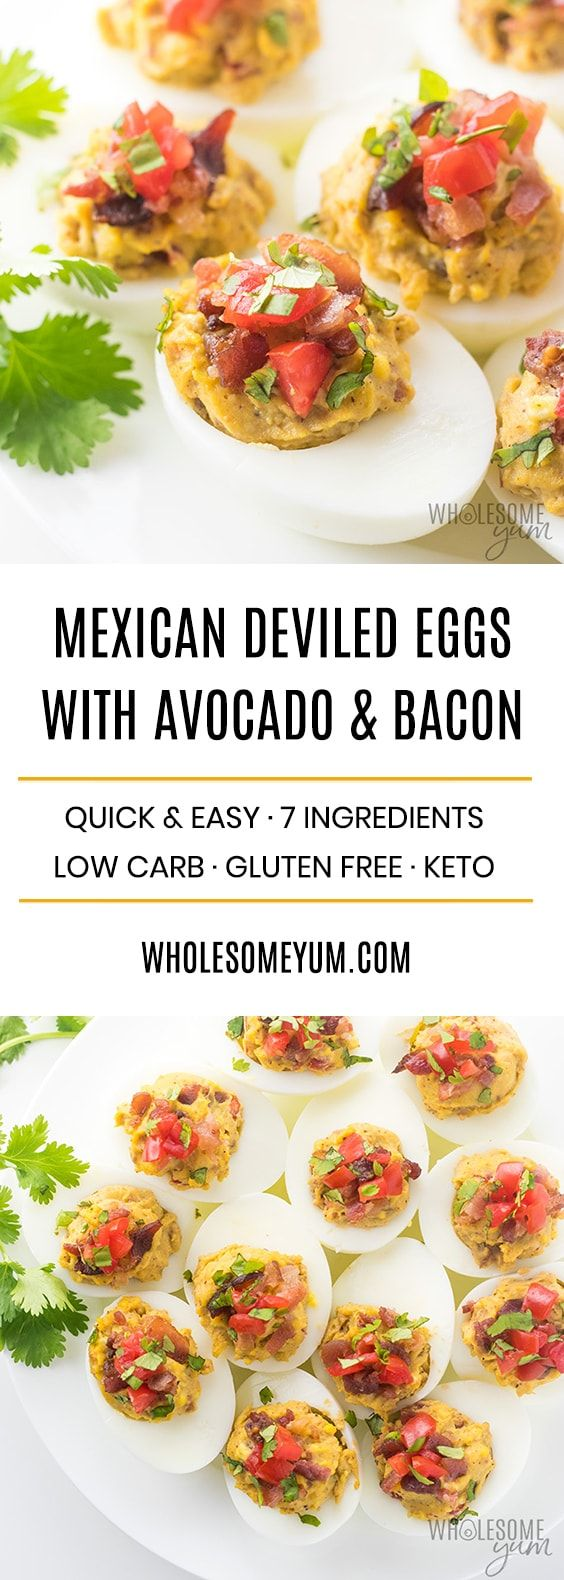 Easy Keto Deviled Eggs Recipe | Wholesome Yum